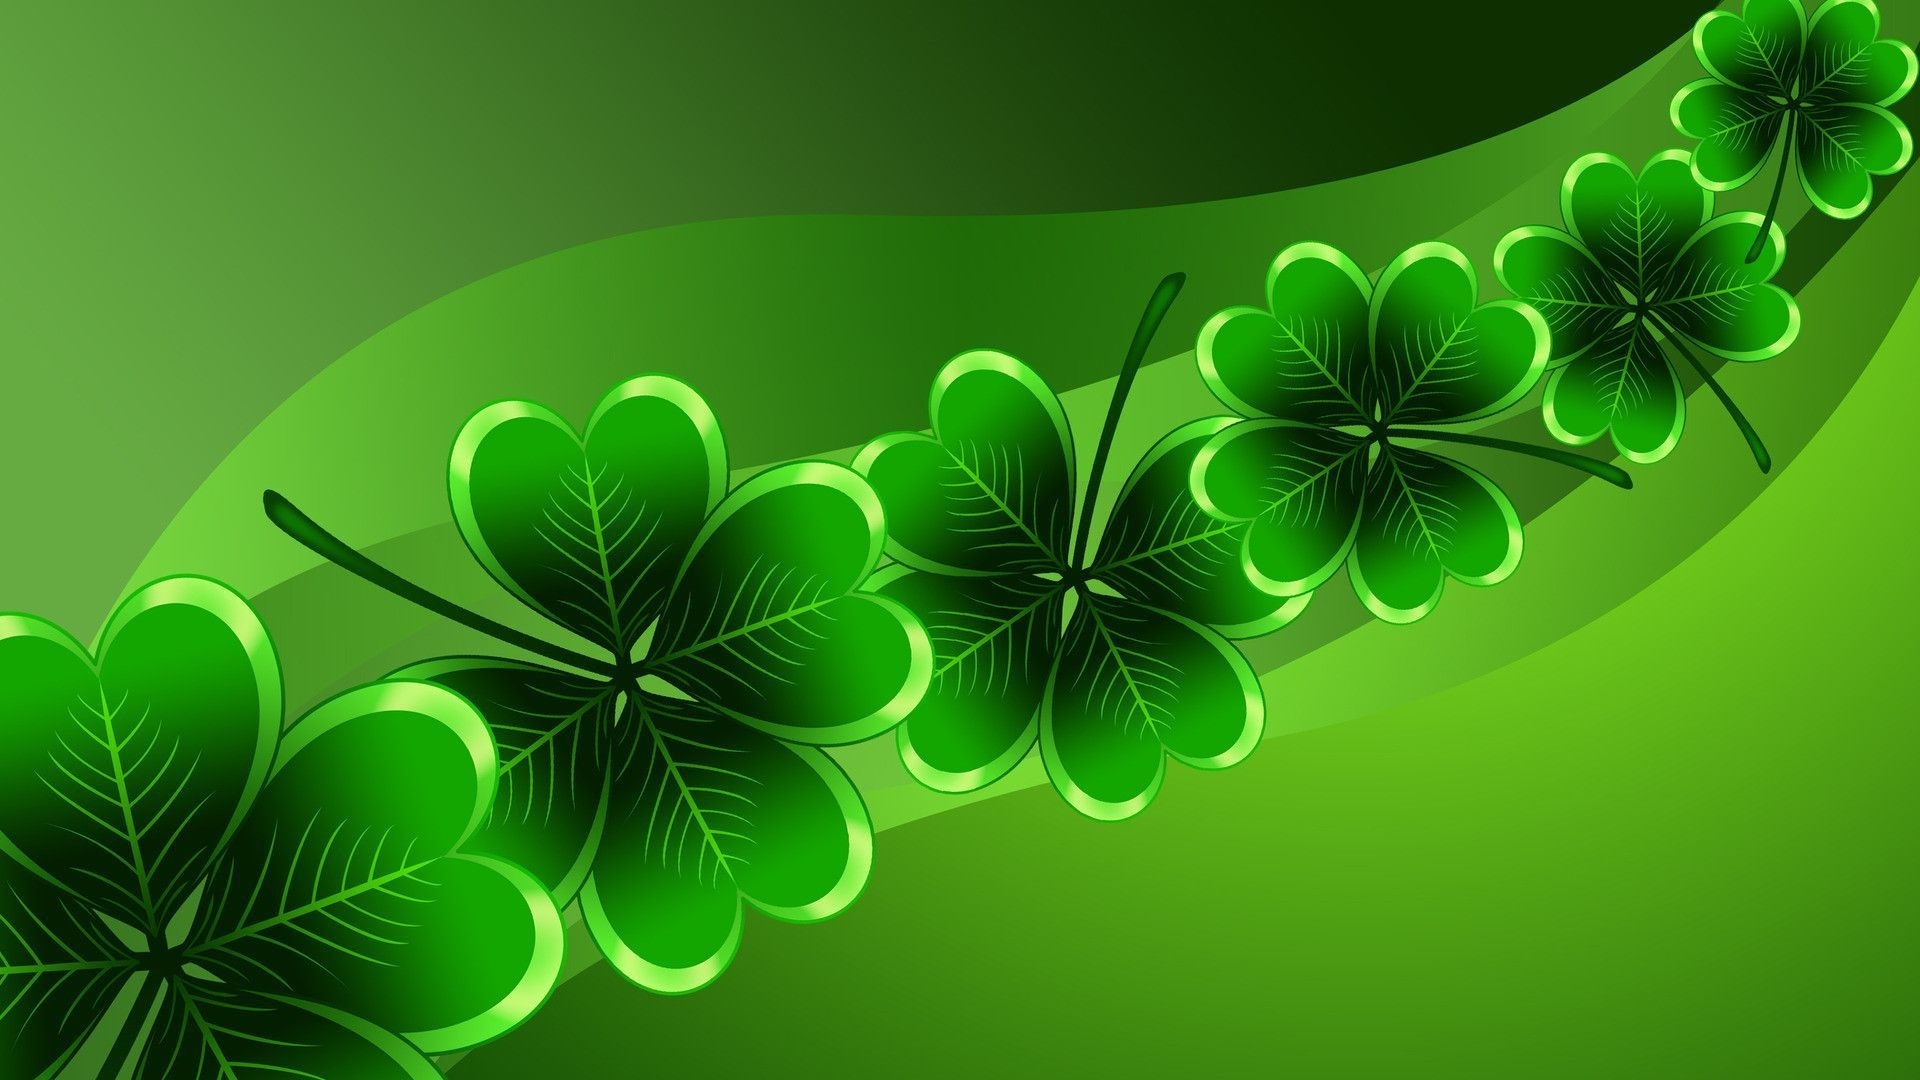 st patricks wallpaper desktop | st. patrick's day hd wallpapers - hd